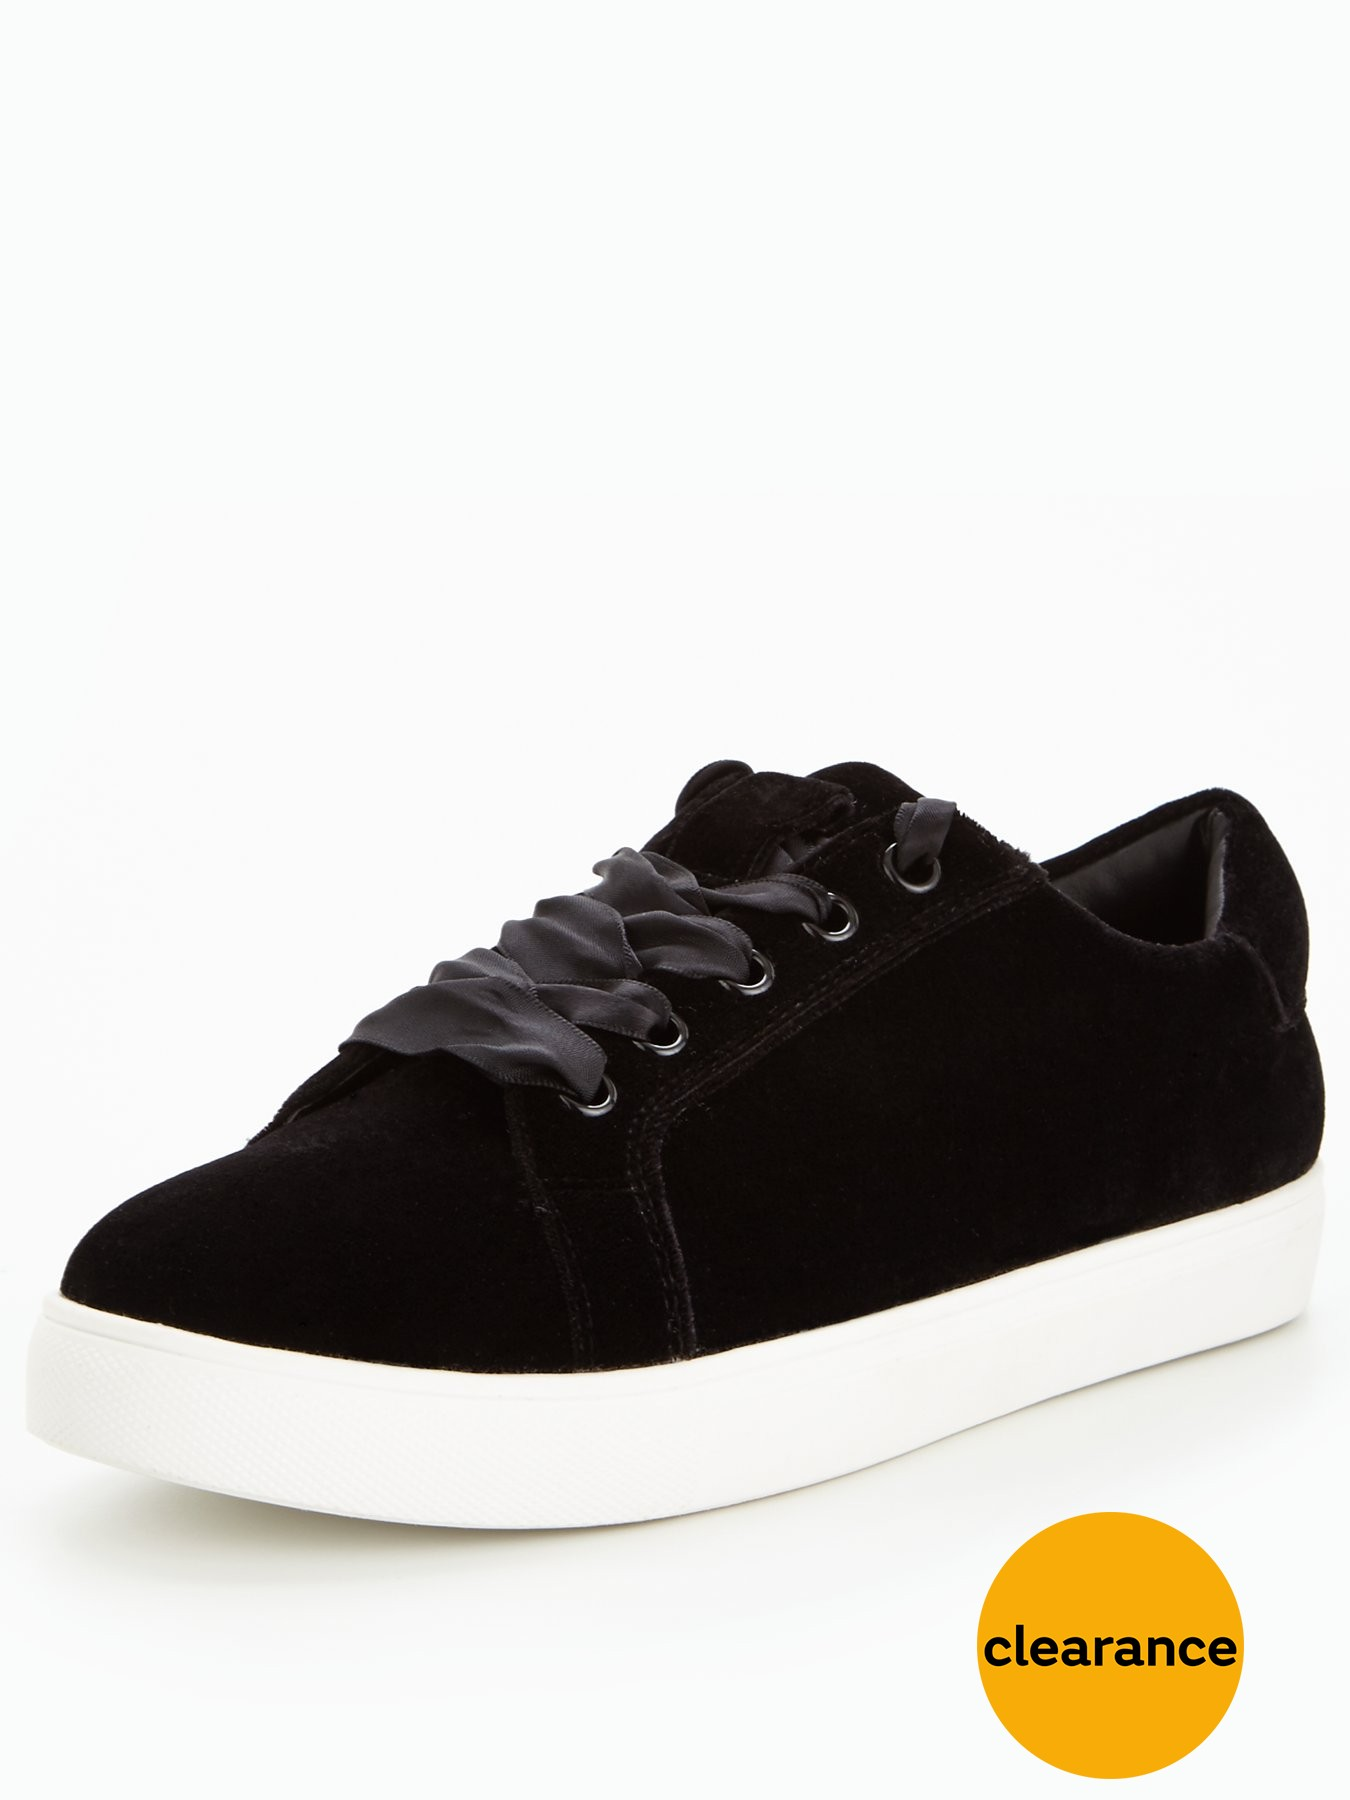 V by Very Flash Velvet Trainer Black 1600156218 Women's Shoes V by Very Trainers